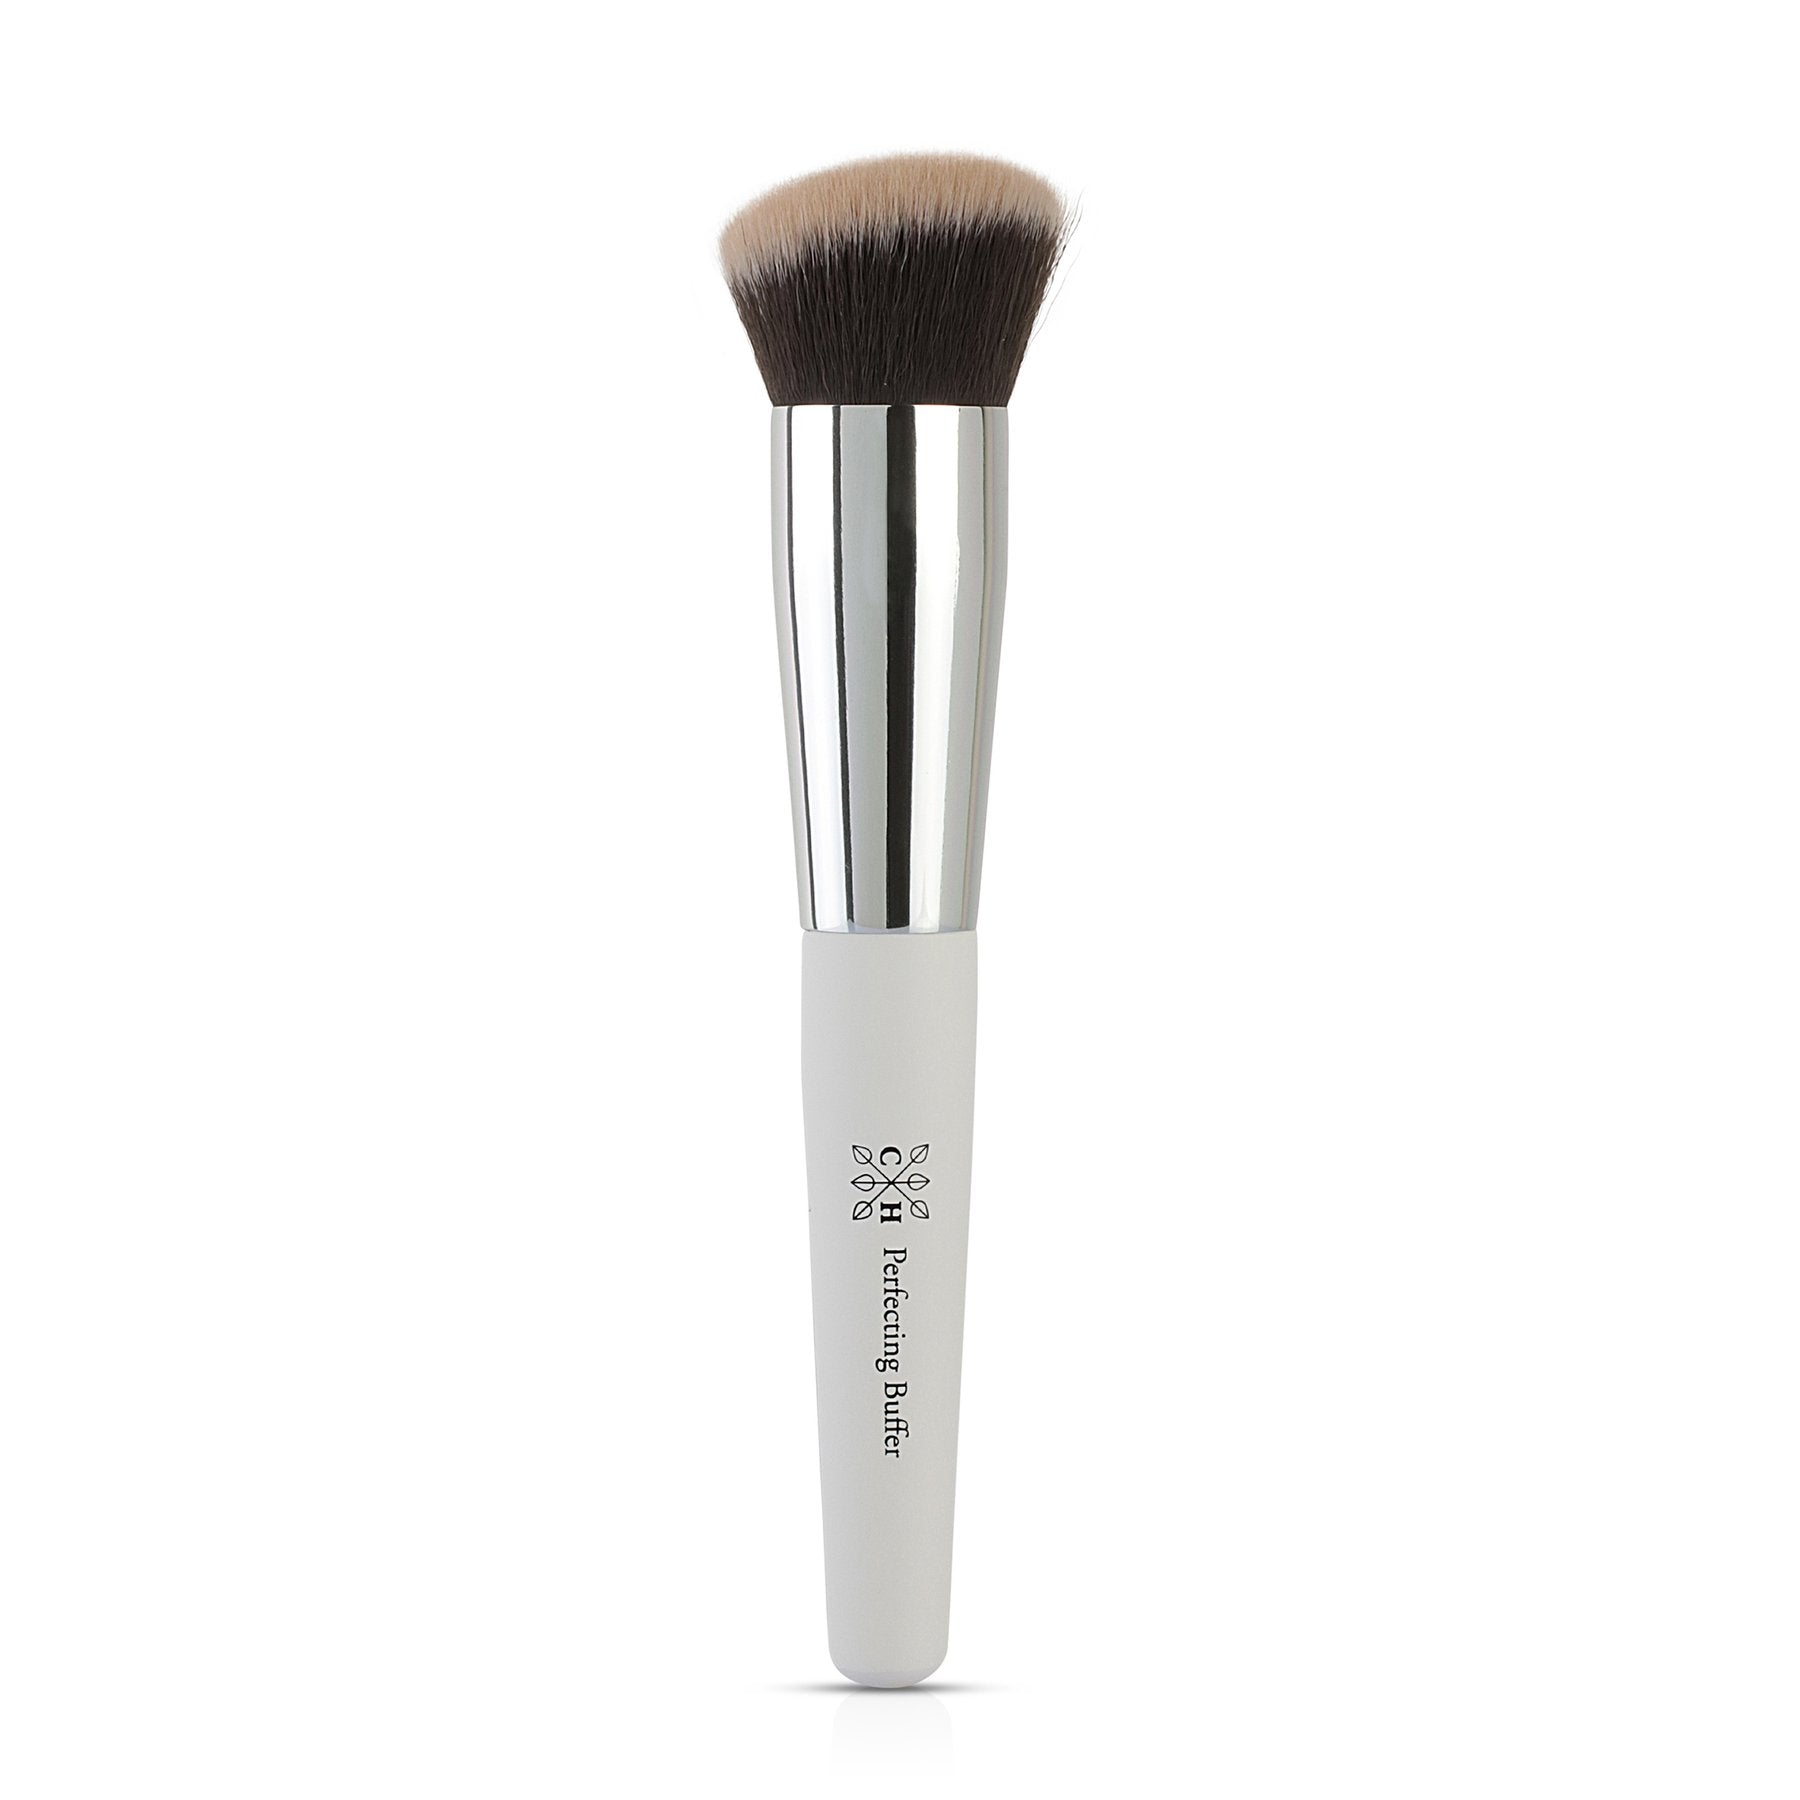 Clove + Hallow Perfecting Buffer Brush - AILLEA